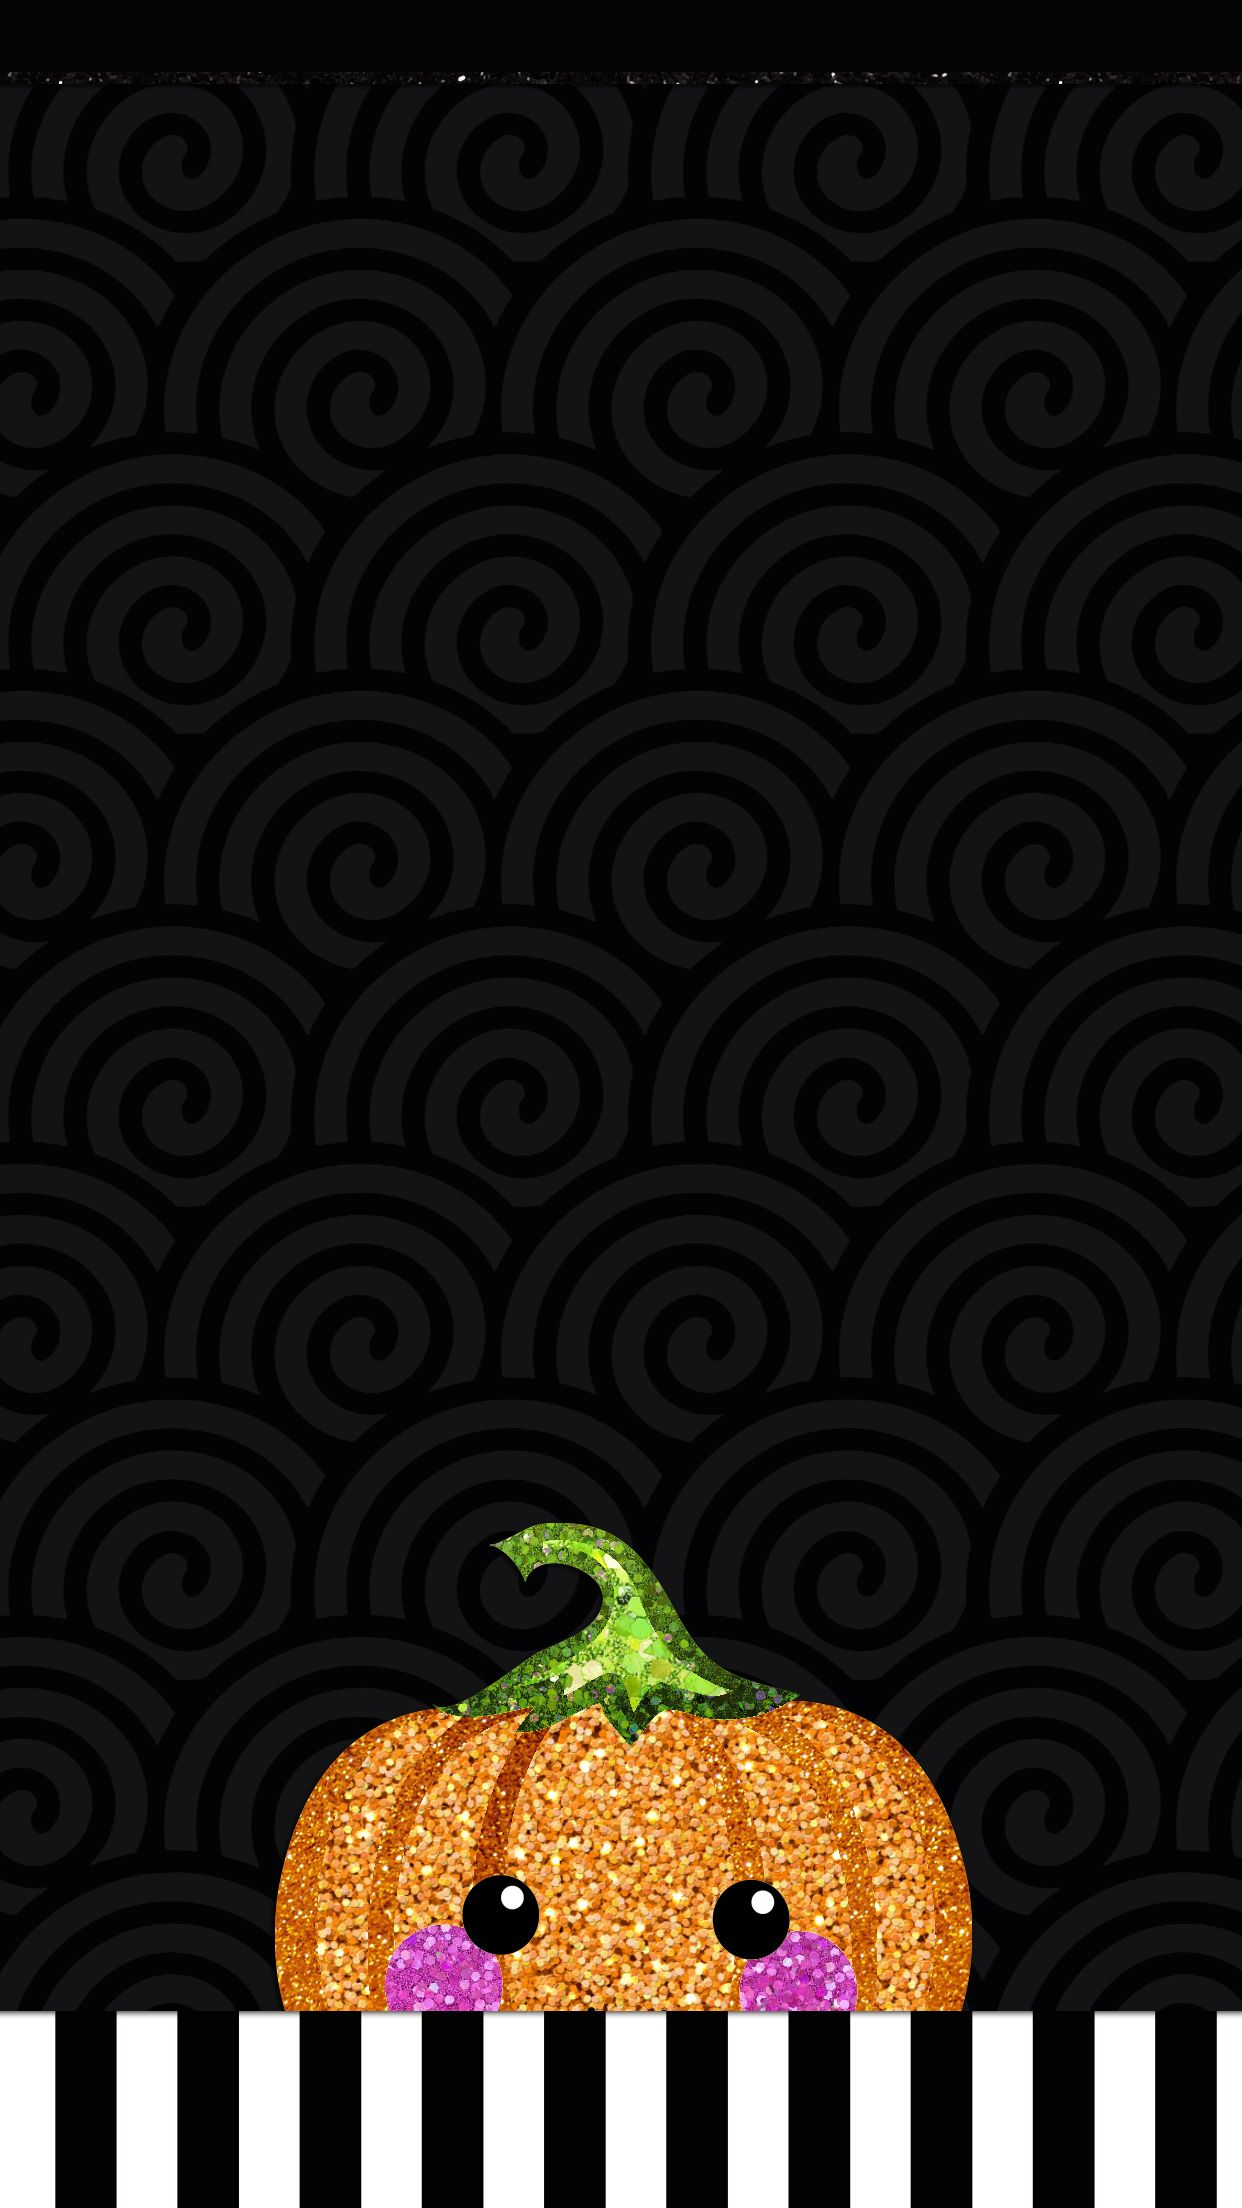 Iphone Wall Halloween Tjn Halloween Wallpaper Iphone Halloween Wallpaper Cellphone Wallpaper